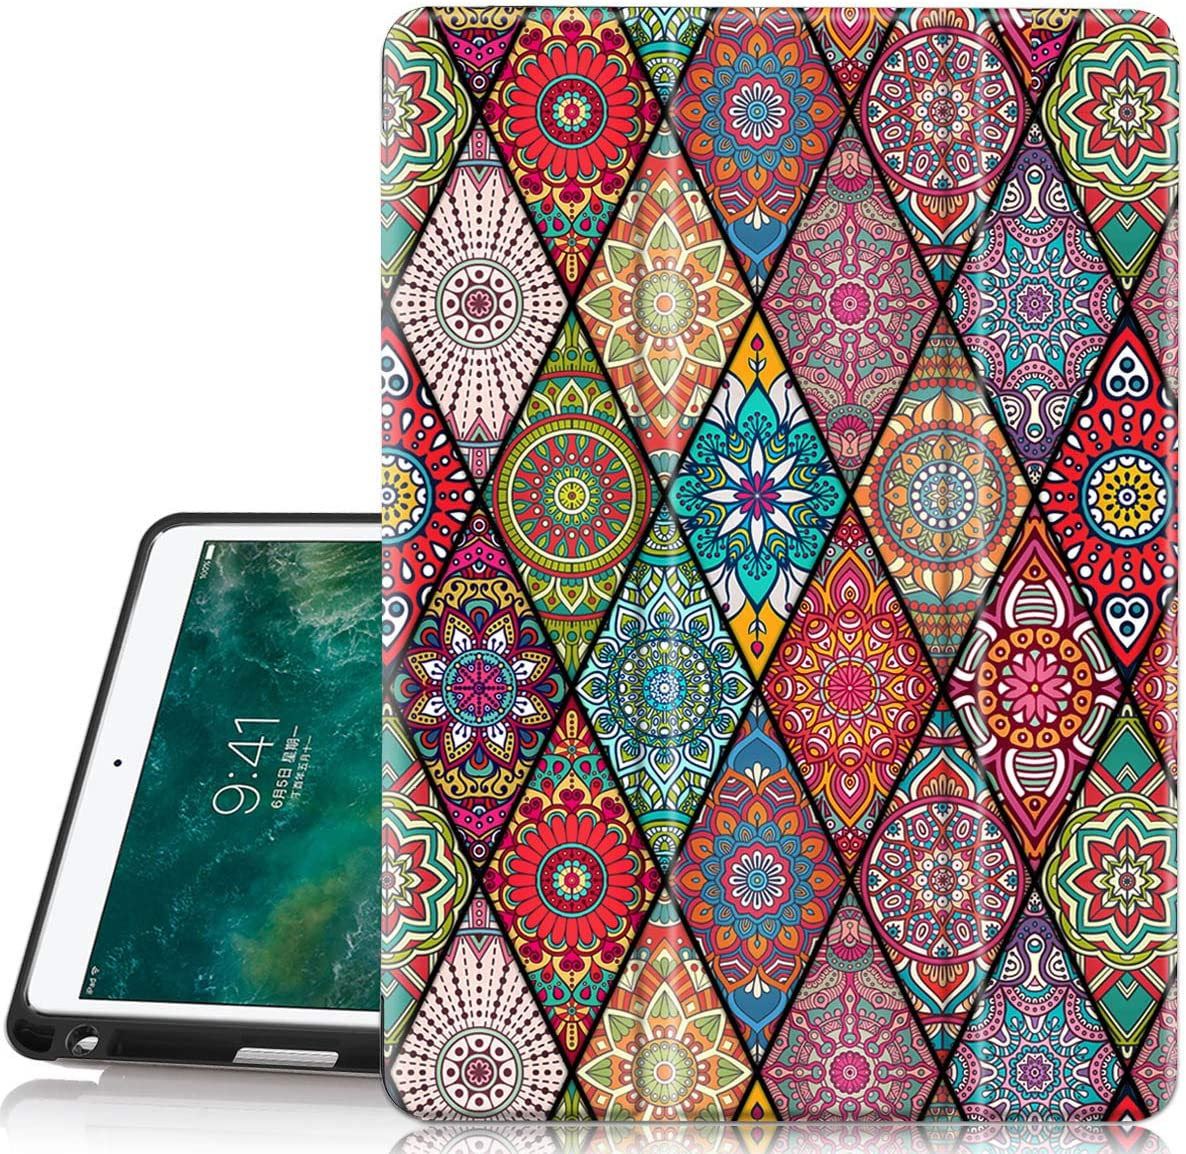 Hocase iPad Air 3rd Gen/iPad Pro 10.5 Case, Trifold Smart Case with Pencil Holder, Unique Pattern Design, Auto Sleep/Wake, Soft Back Cover for iPad A1701/A1709/A2152/A2123/A2153 - Mandala Flowers